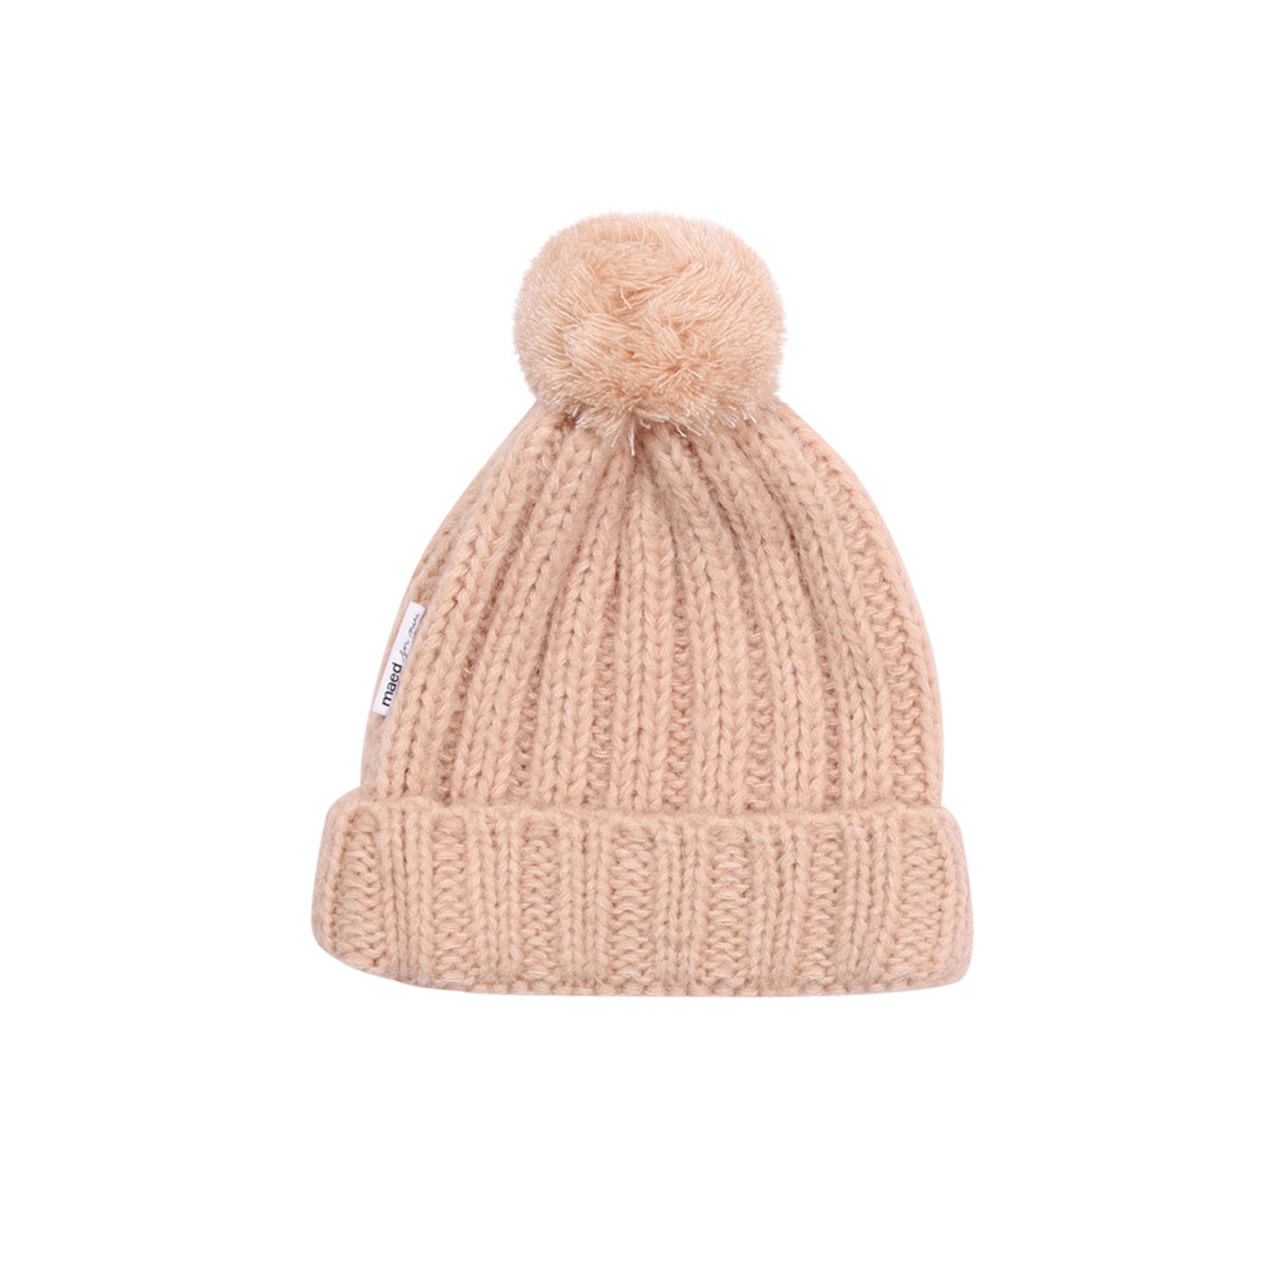 Knit hat peach parrot baby-1